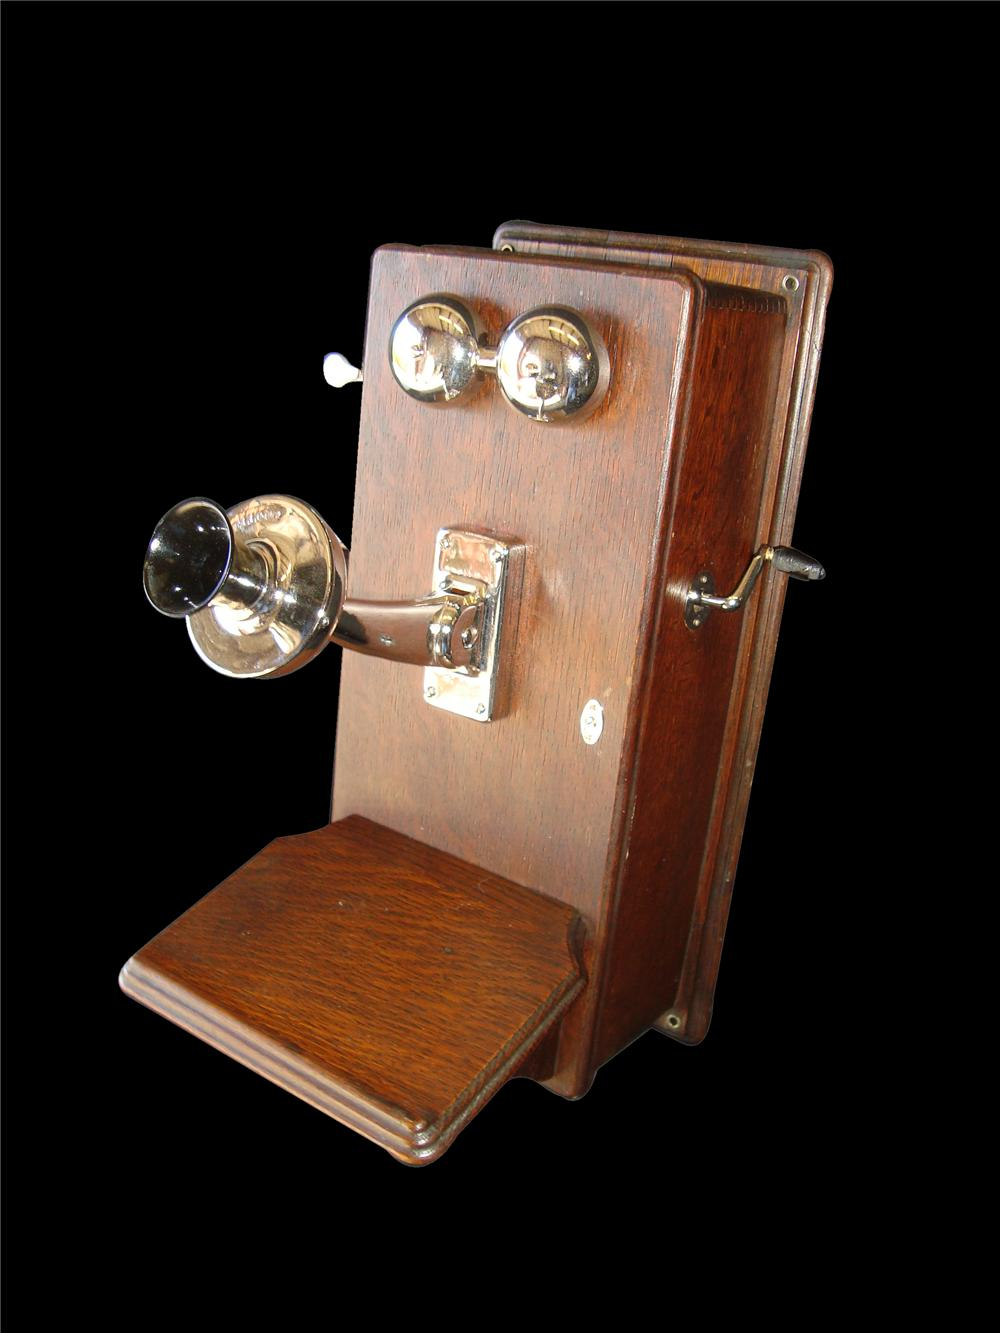 Early 1900s wood crank telephone will all chrome refurbished. - Front 3/4 - 117980